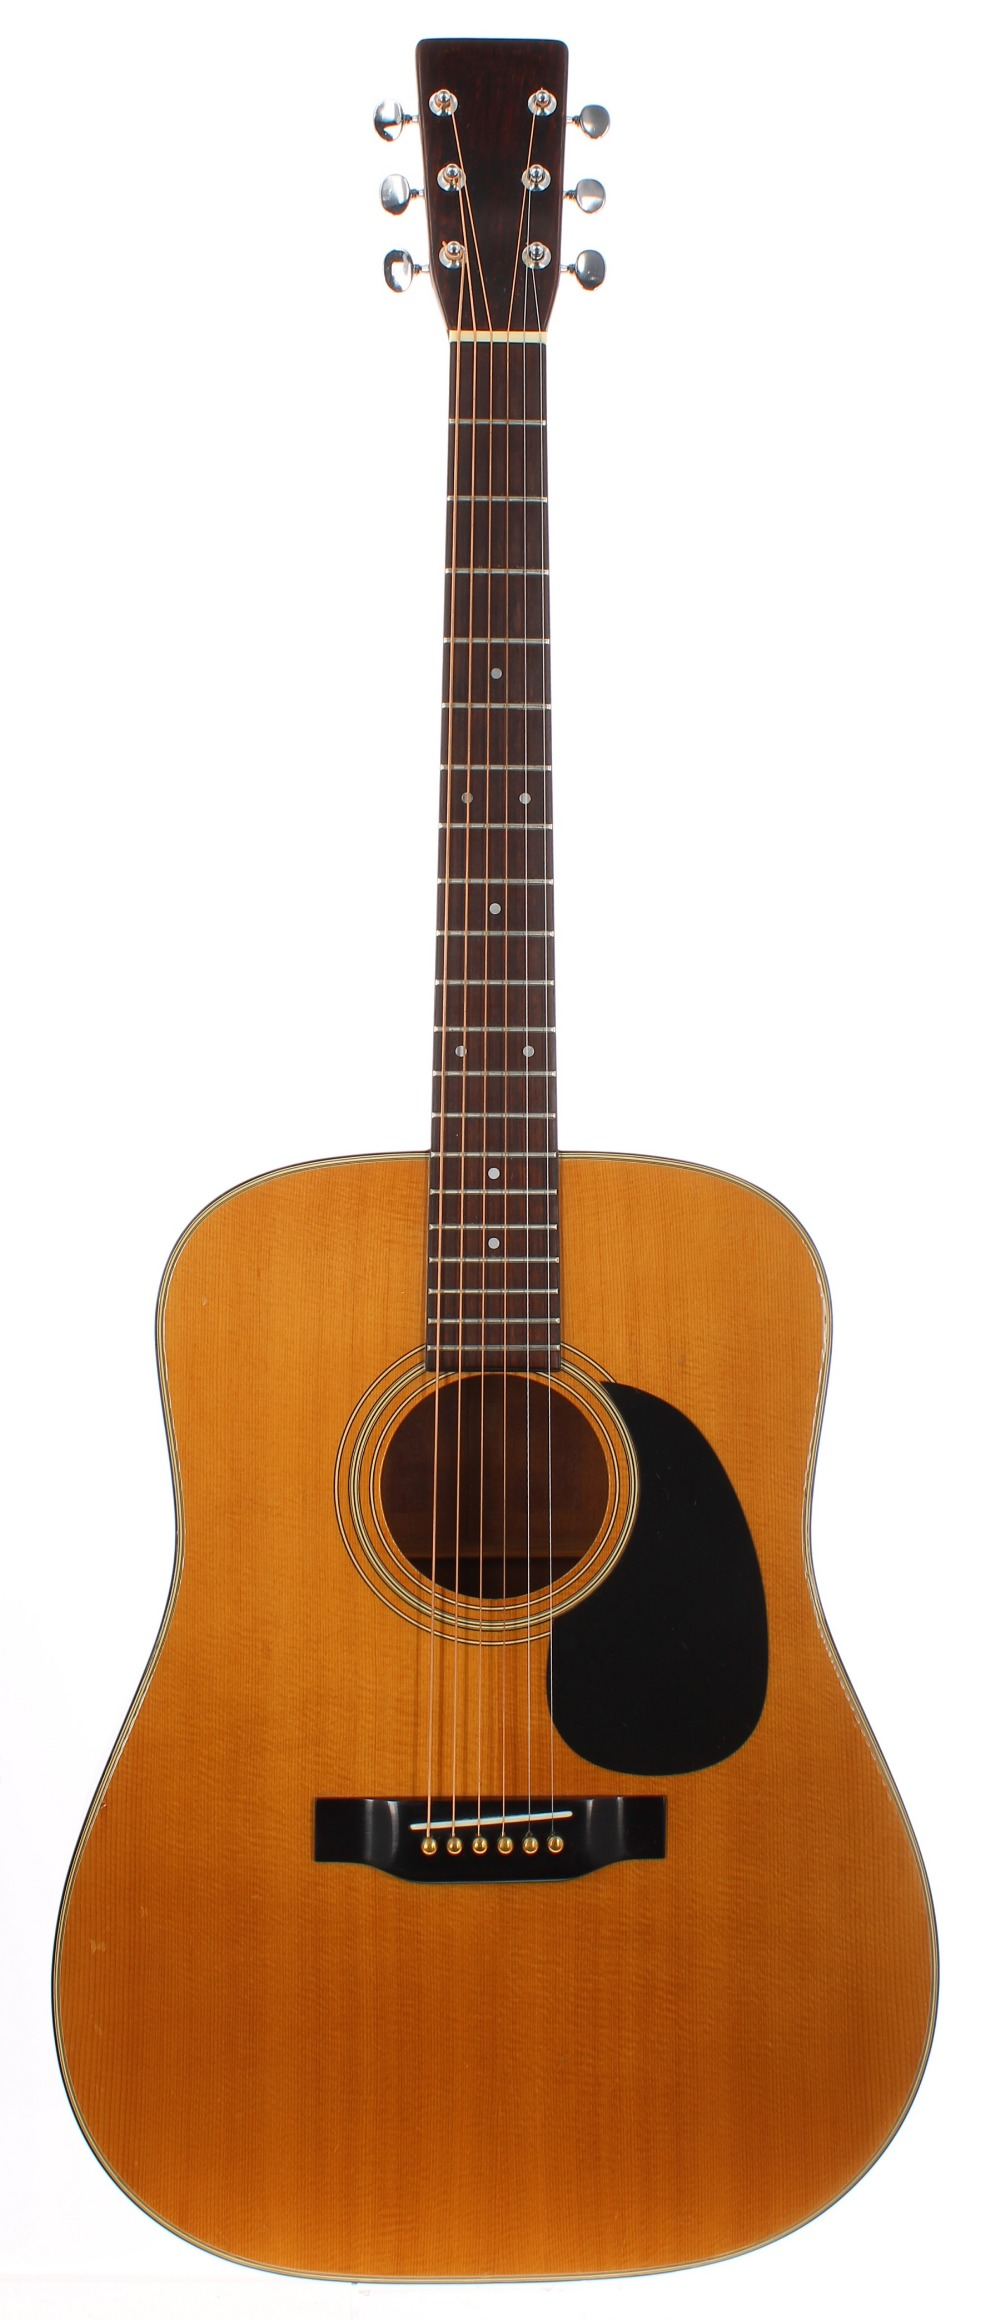 1970s Sigma D18 acoustic guitar, made in Japan; Back and sides: mahogany, surface scratches and